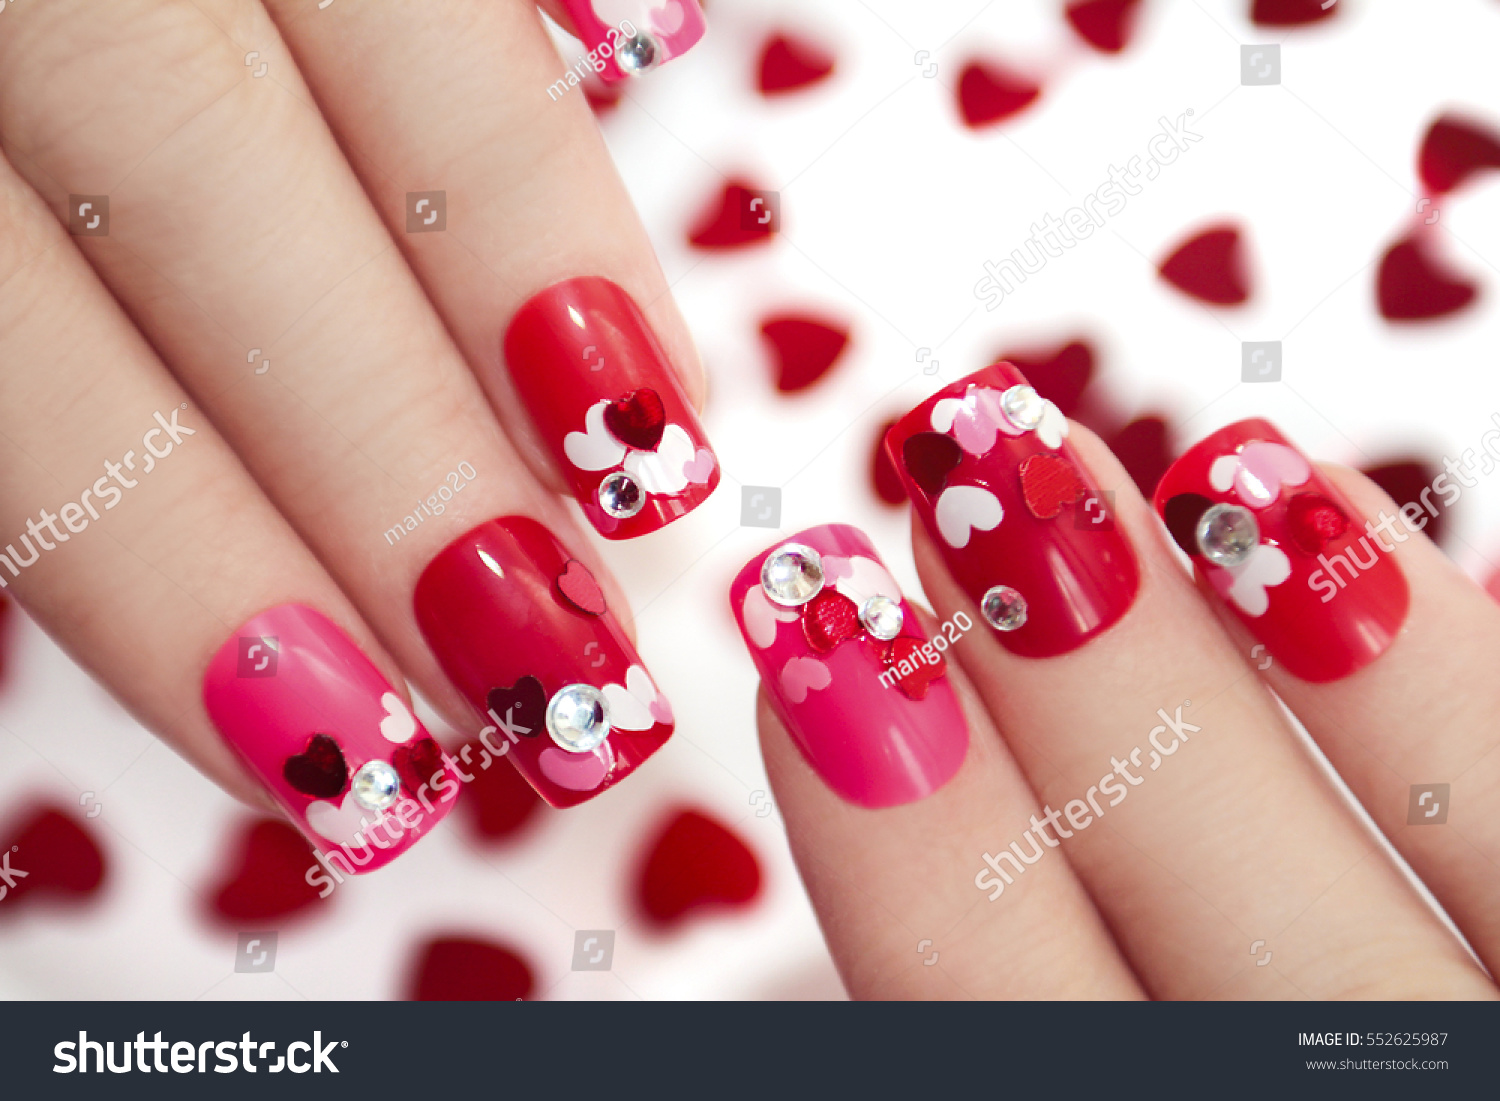 Nail designs different sequins shape hearts stock photo 552625987 nail designs with different sequins in the shape of hearts on red and pink nails for prinsesfo Choice Image